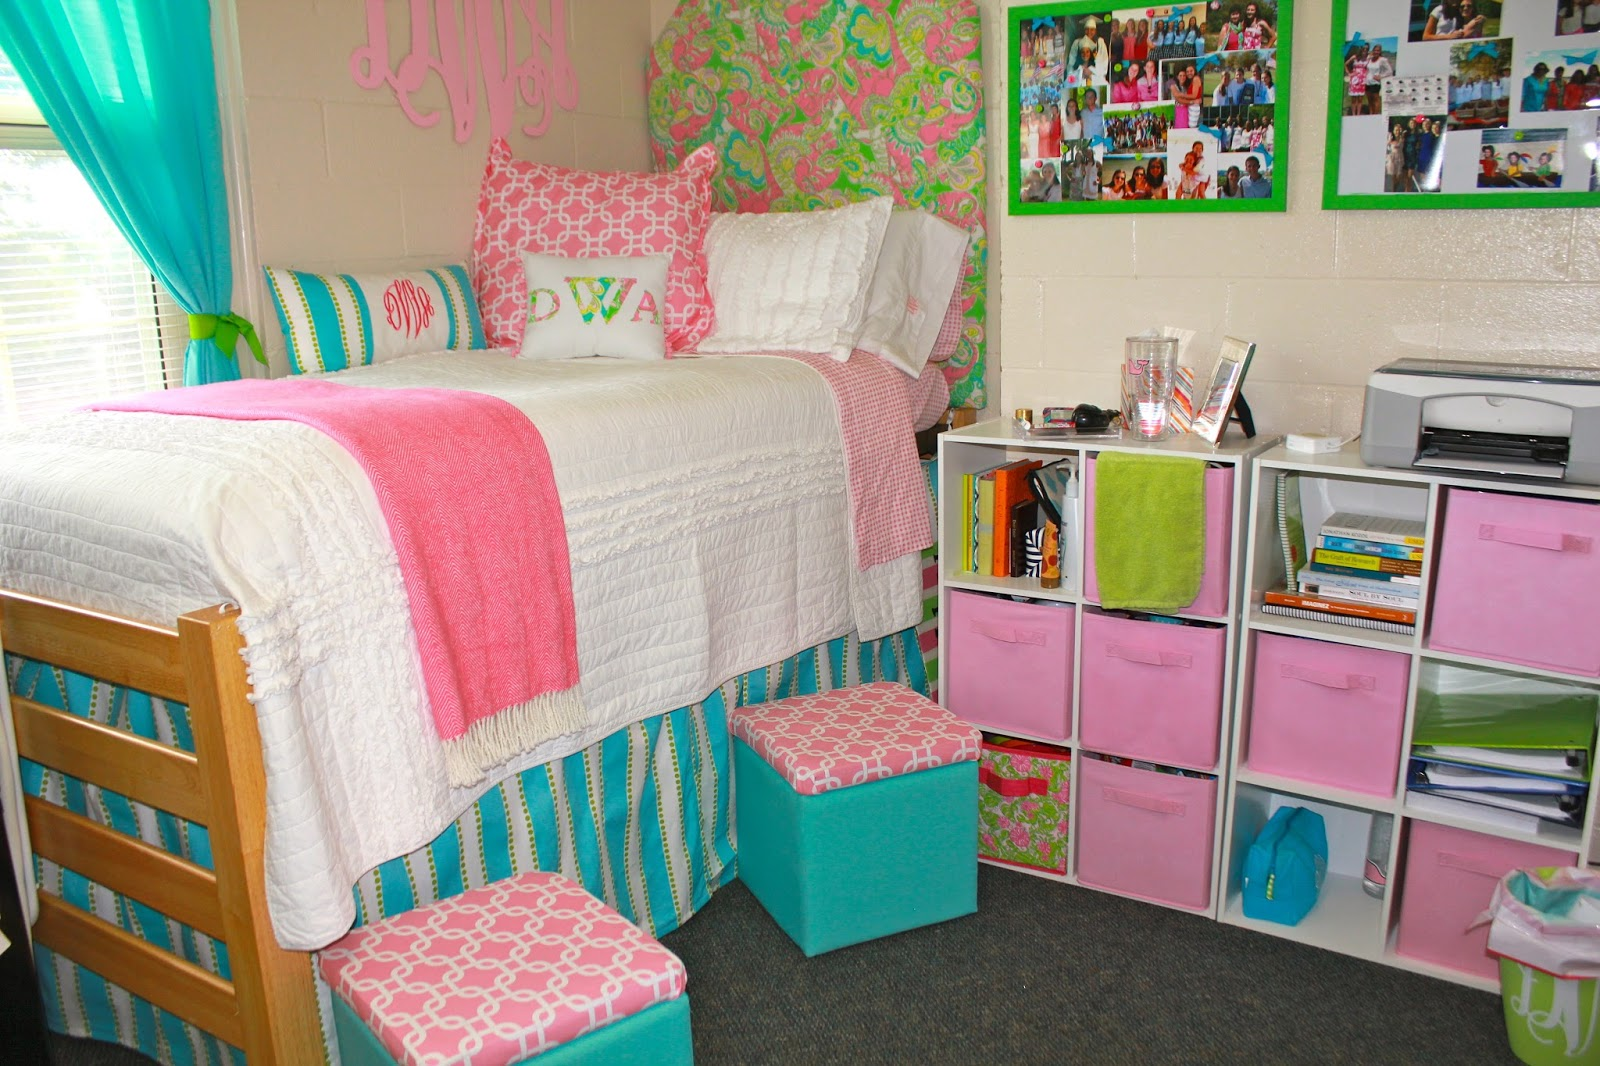 Miss southern prep preppy dorm showcase round 4 dorothy - Dorm room bedding ideas ...